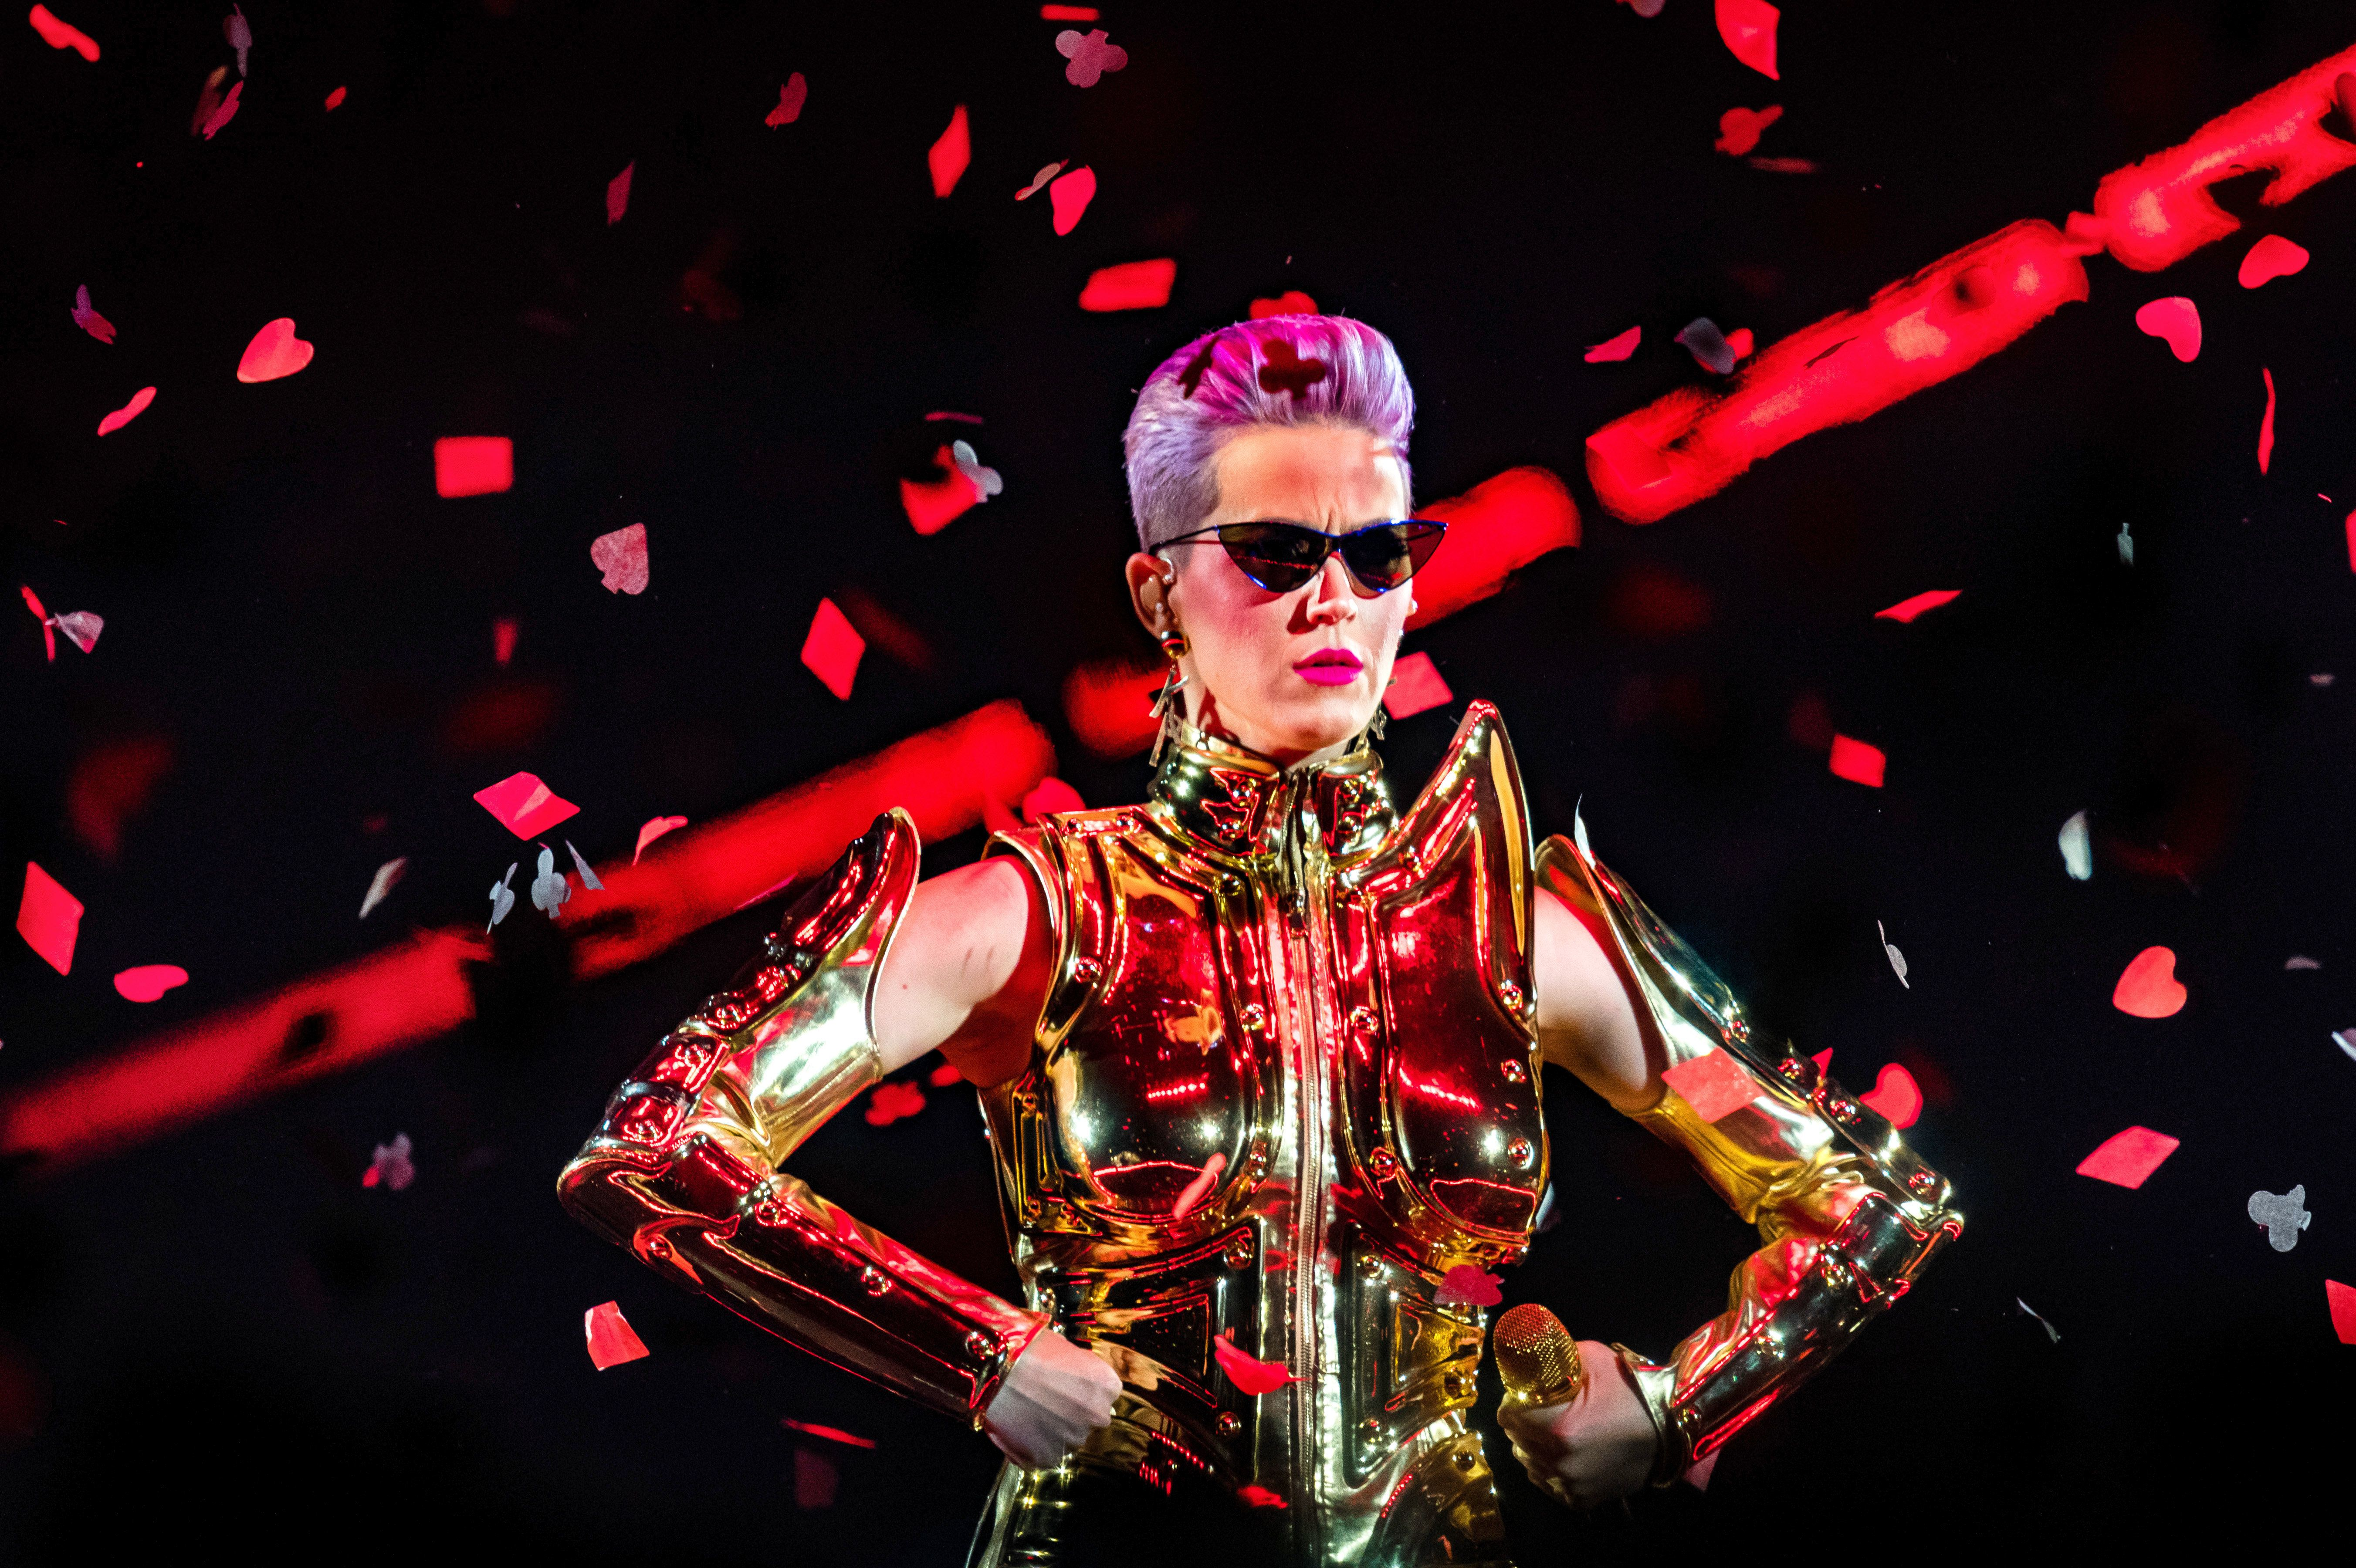 Katy Perry performs on stage as part of Witness: The Tour, at Ziggo Dome, on May 26 in Amsterdam, Netherlands.